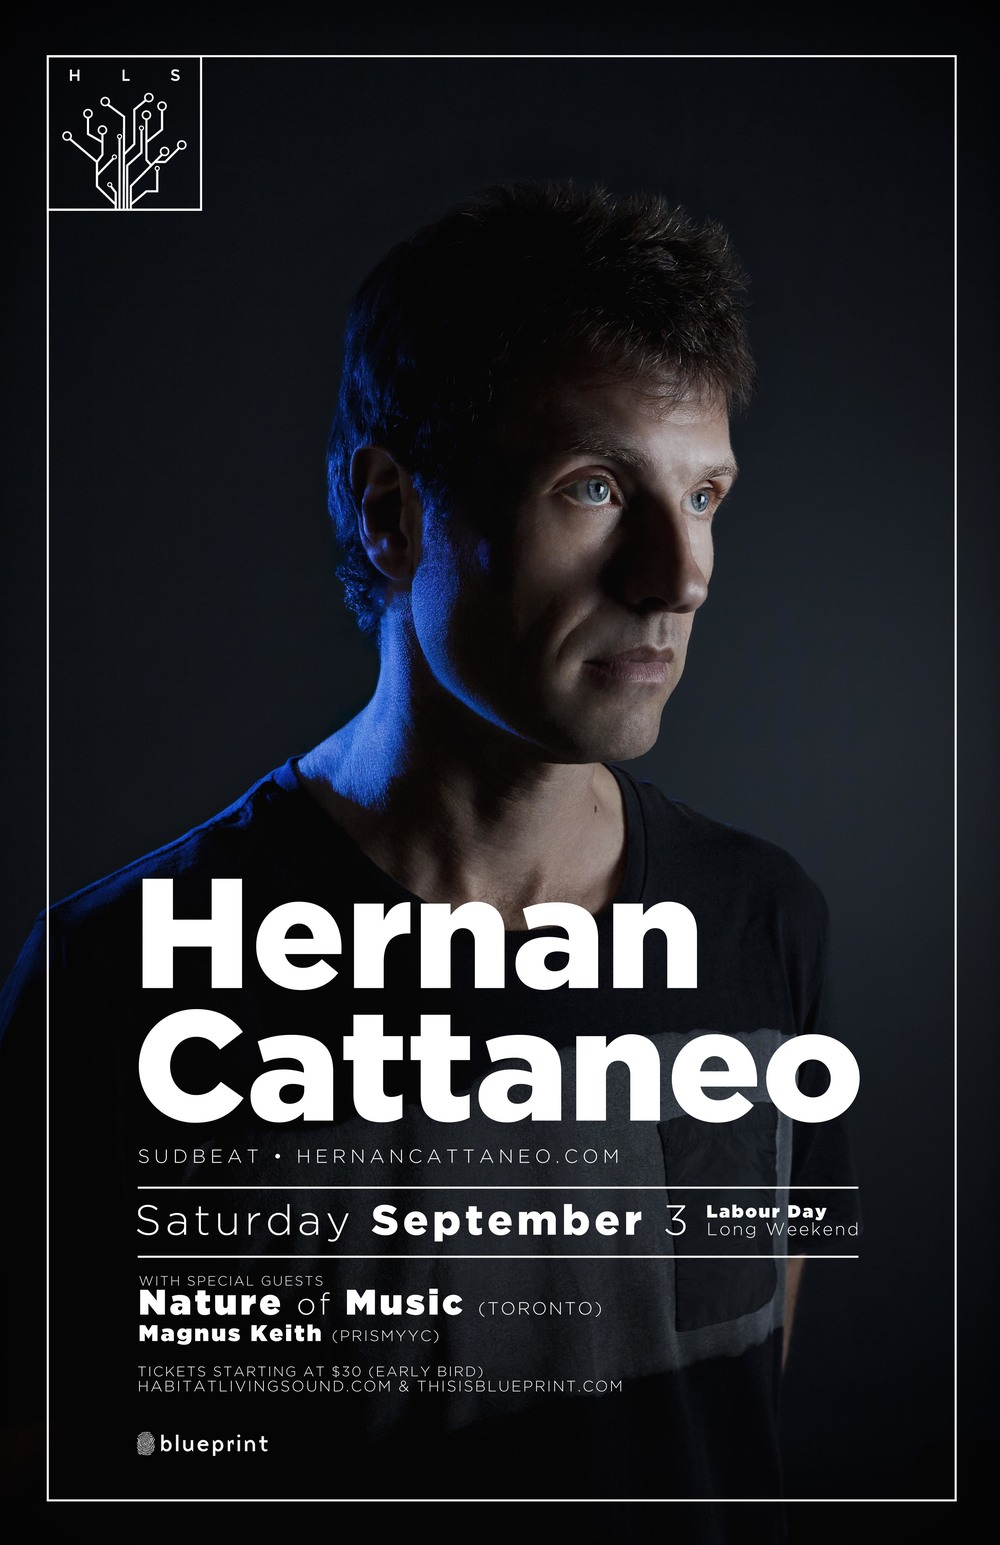 hernan-cattaneo-habitat-living-sound.jpeg